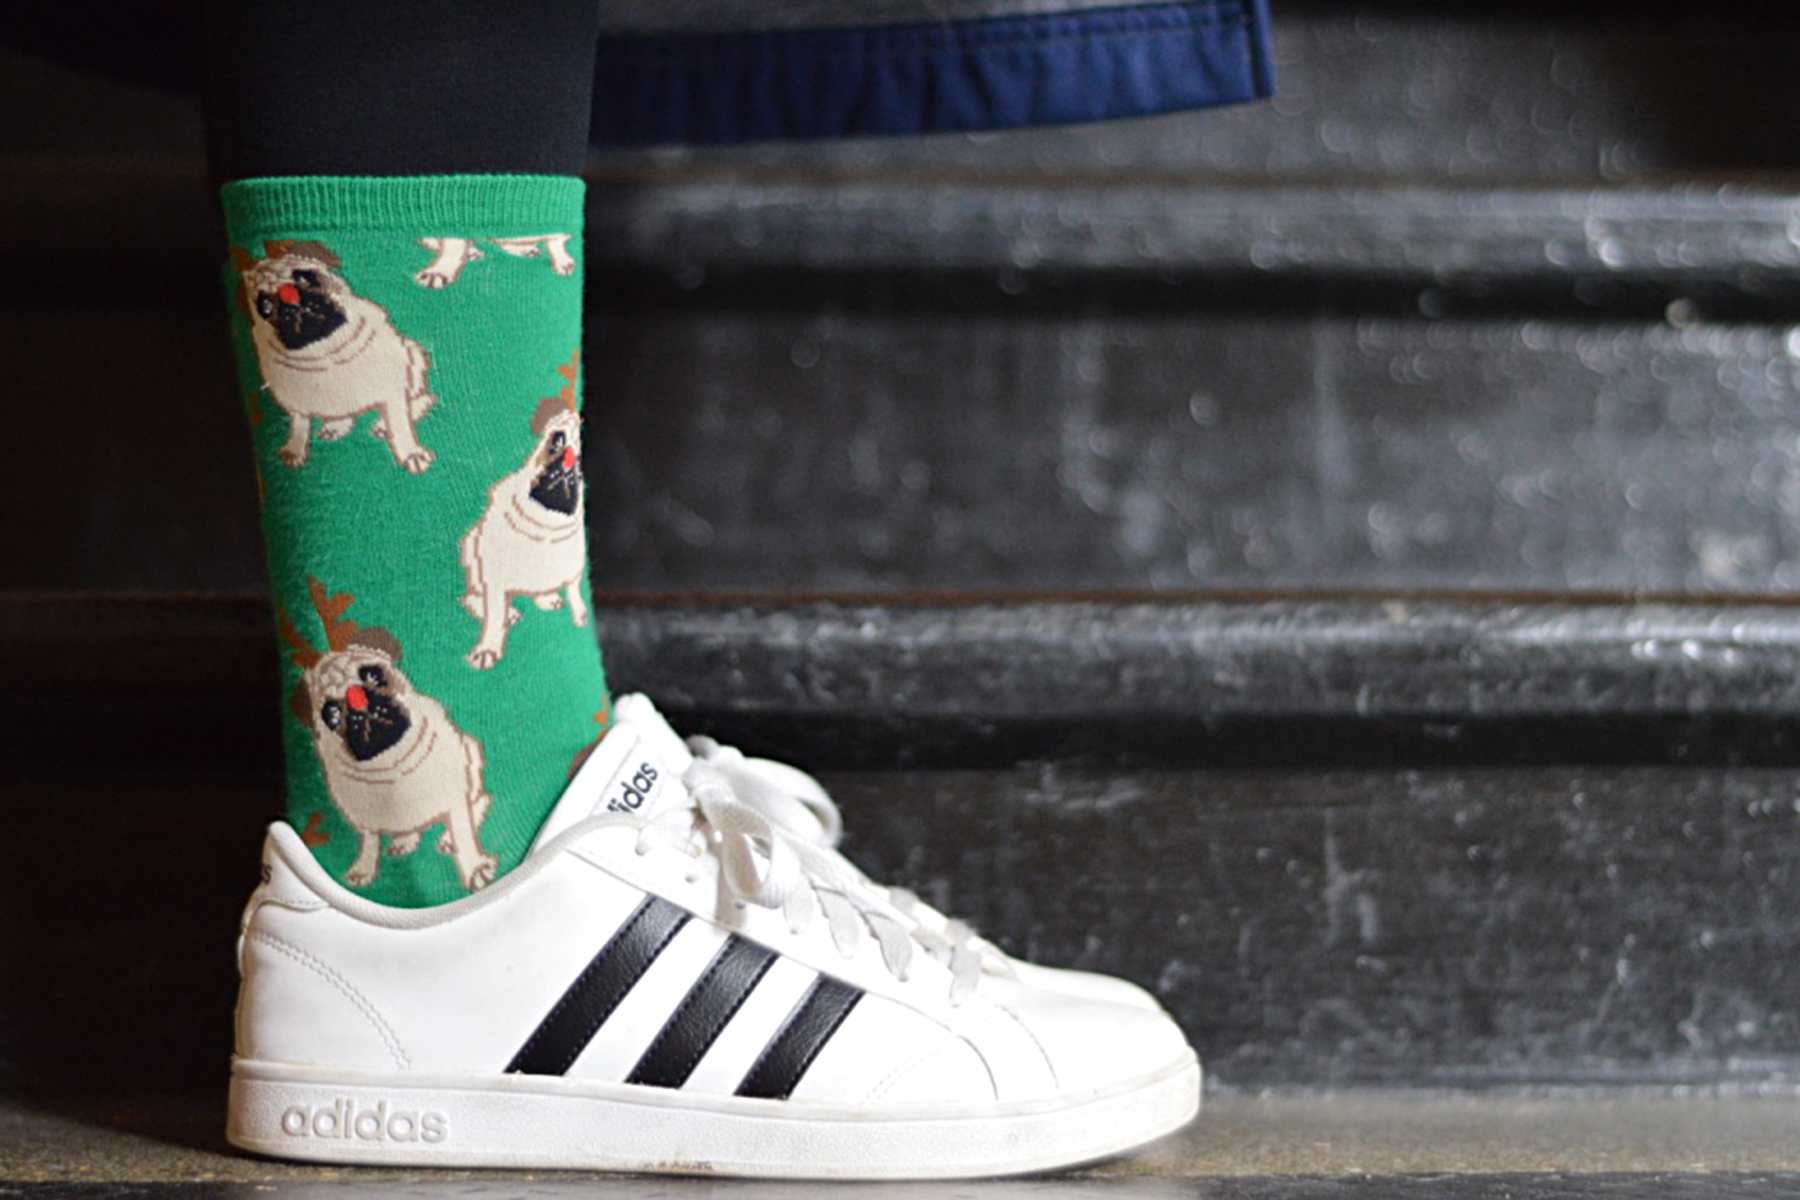 """QUINN KEATLEY """"Whenever I wear a plain outfit, I want to wear fun socks that make me happy. And these socks make me happy!"""""""